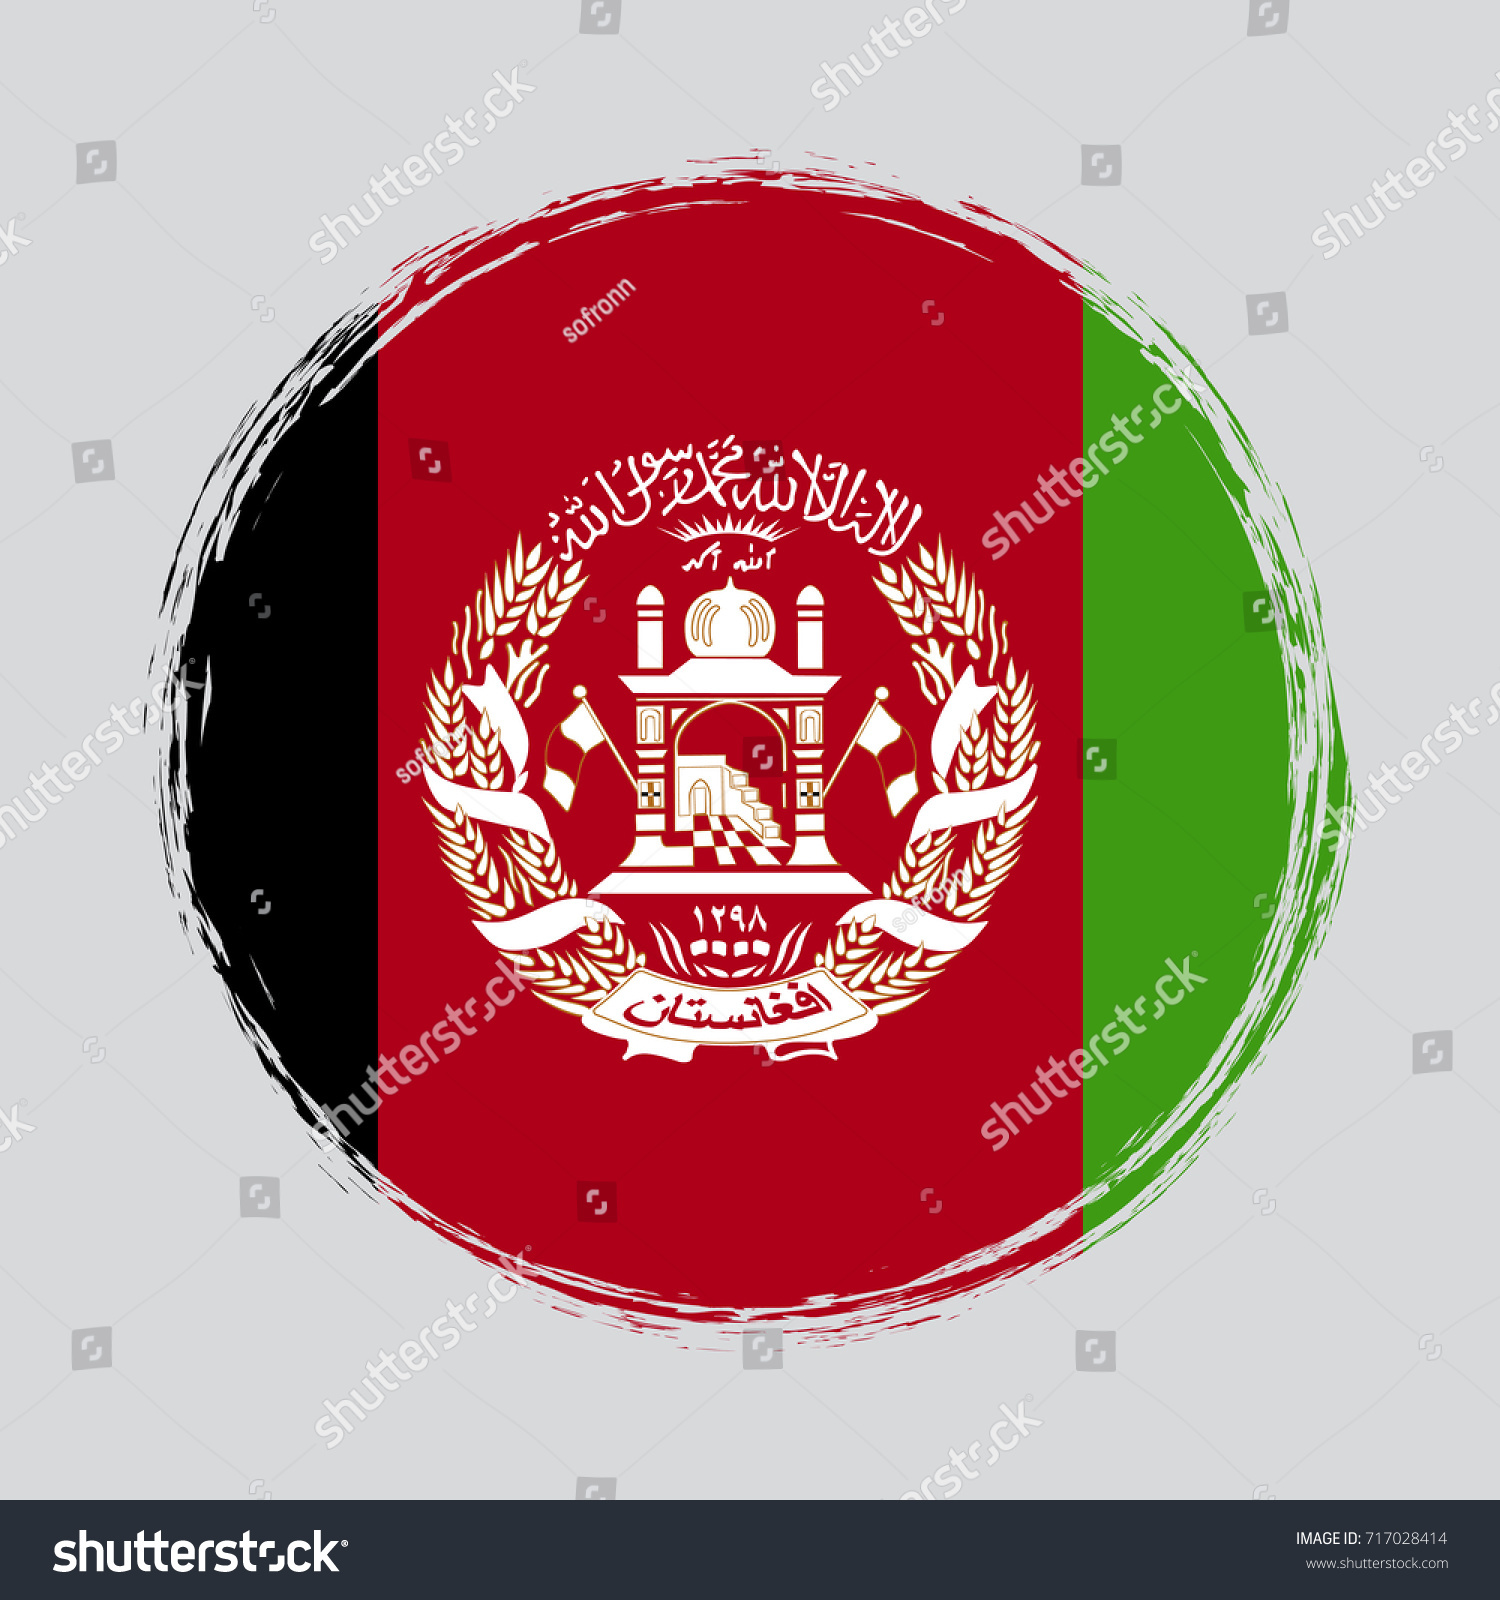 Afghanistan Circle Grunge Flag On Button Stock Vector 717028414 ...